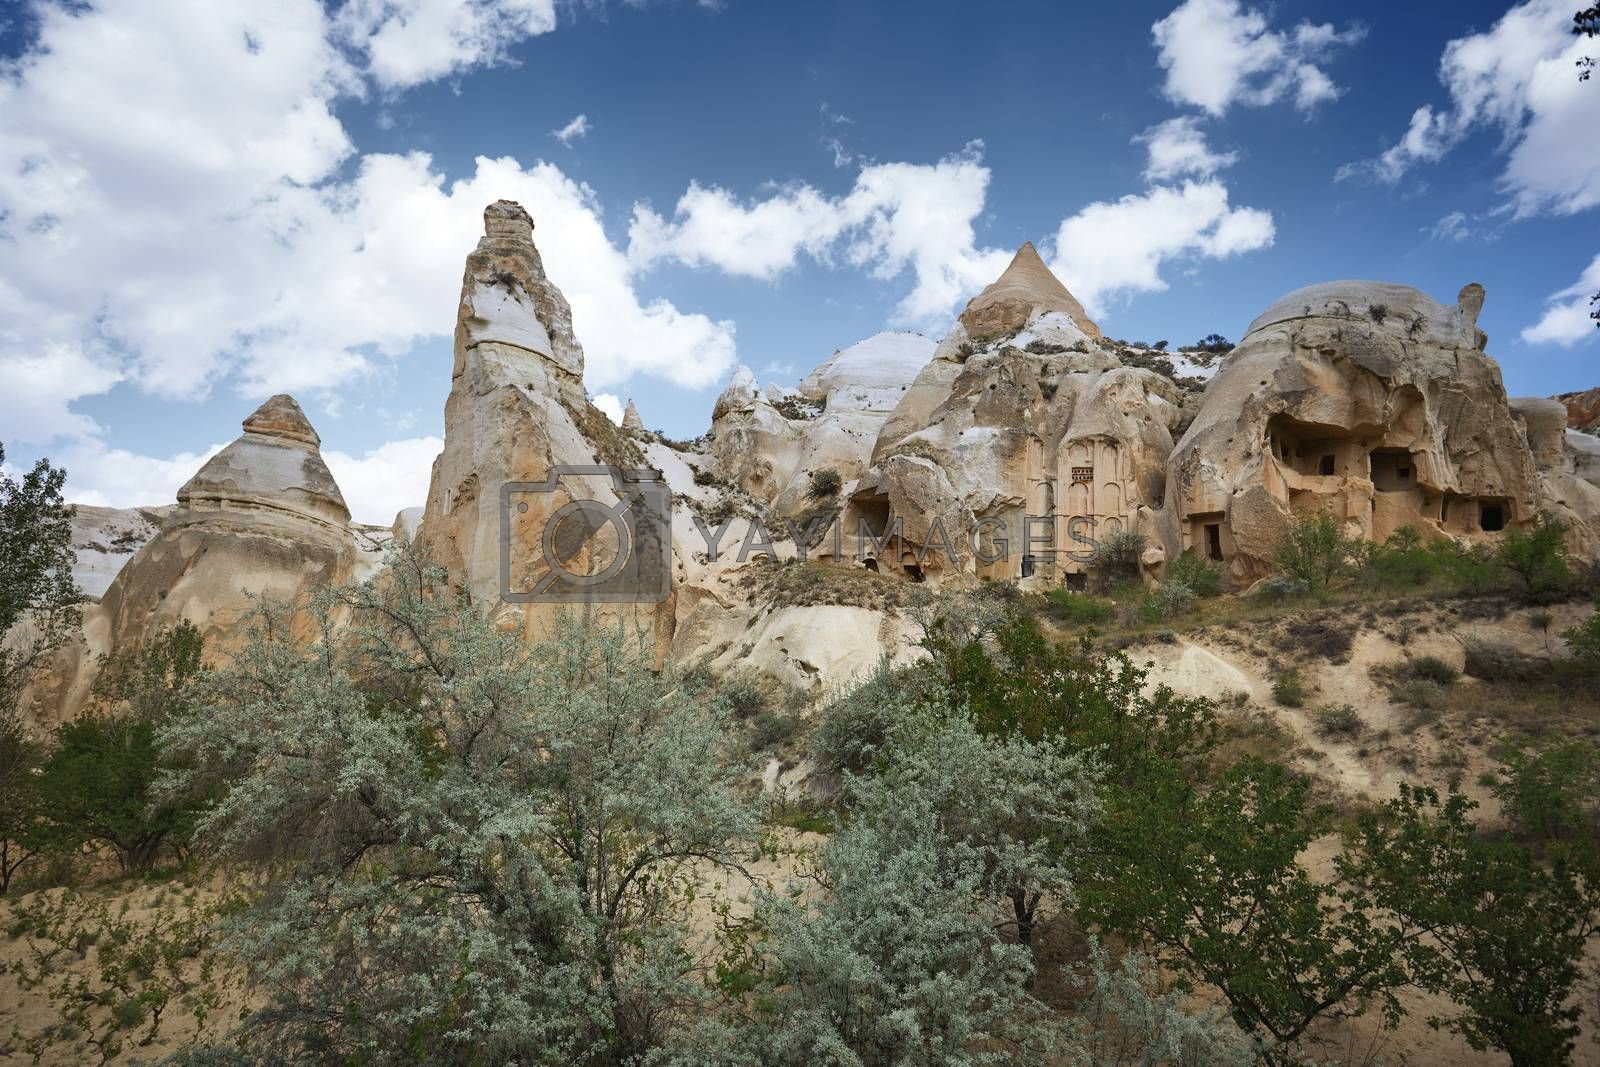 Ancient stone houses of Cappadocia, Turkey